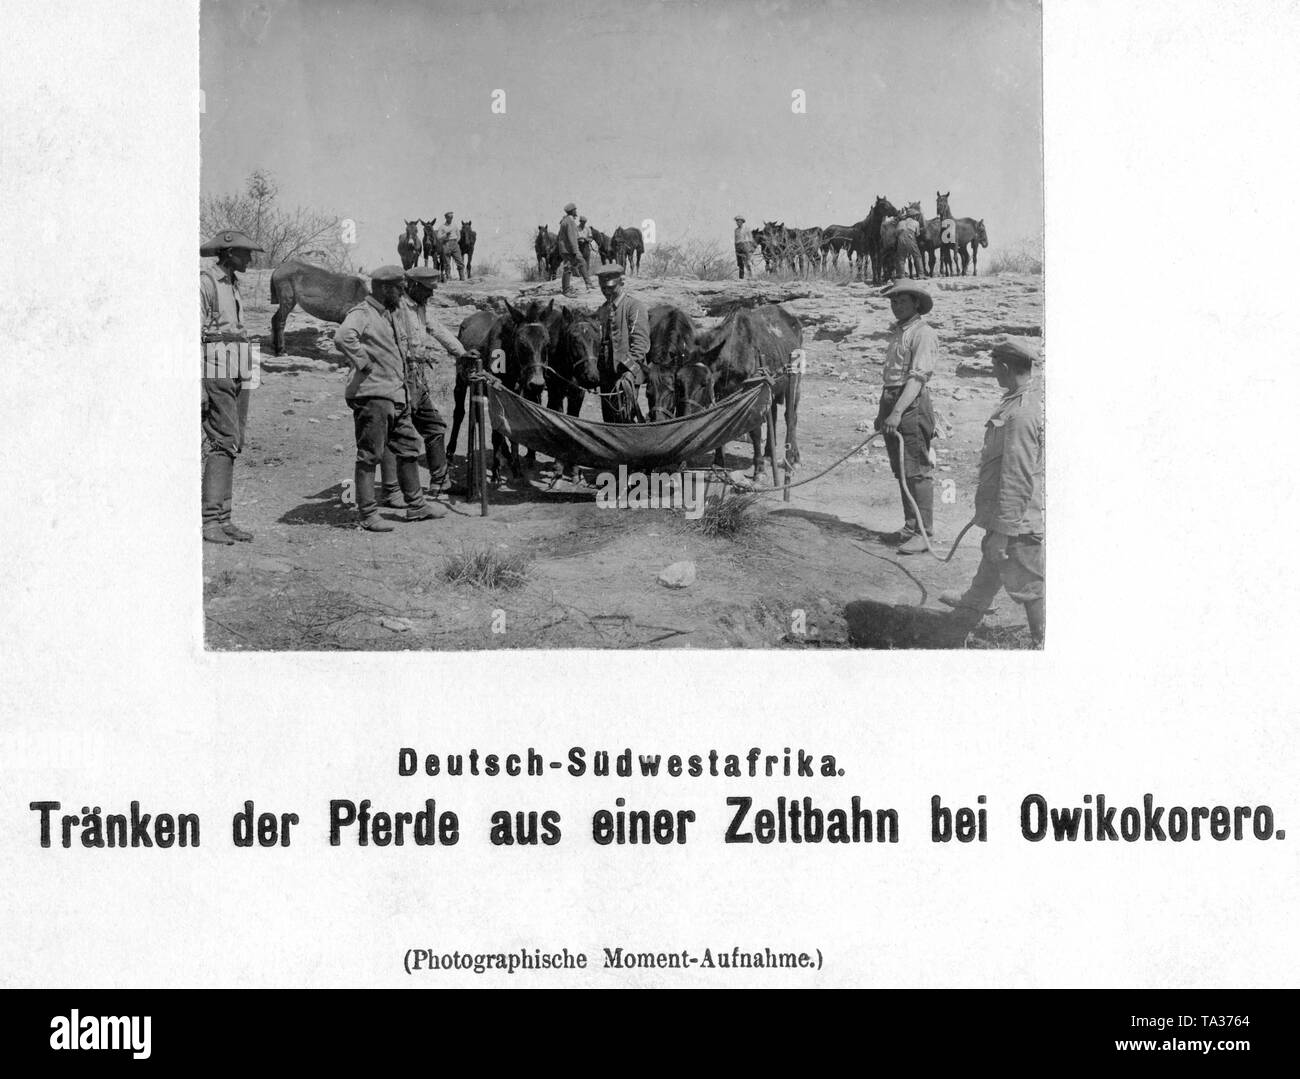 Soldiers of the Schutztruppe water their horses using a tarpaulin at Owikokorero (German Southwest Africa). - Stock Image